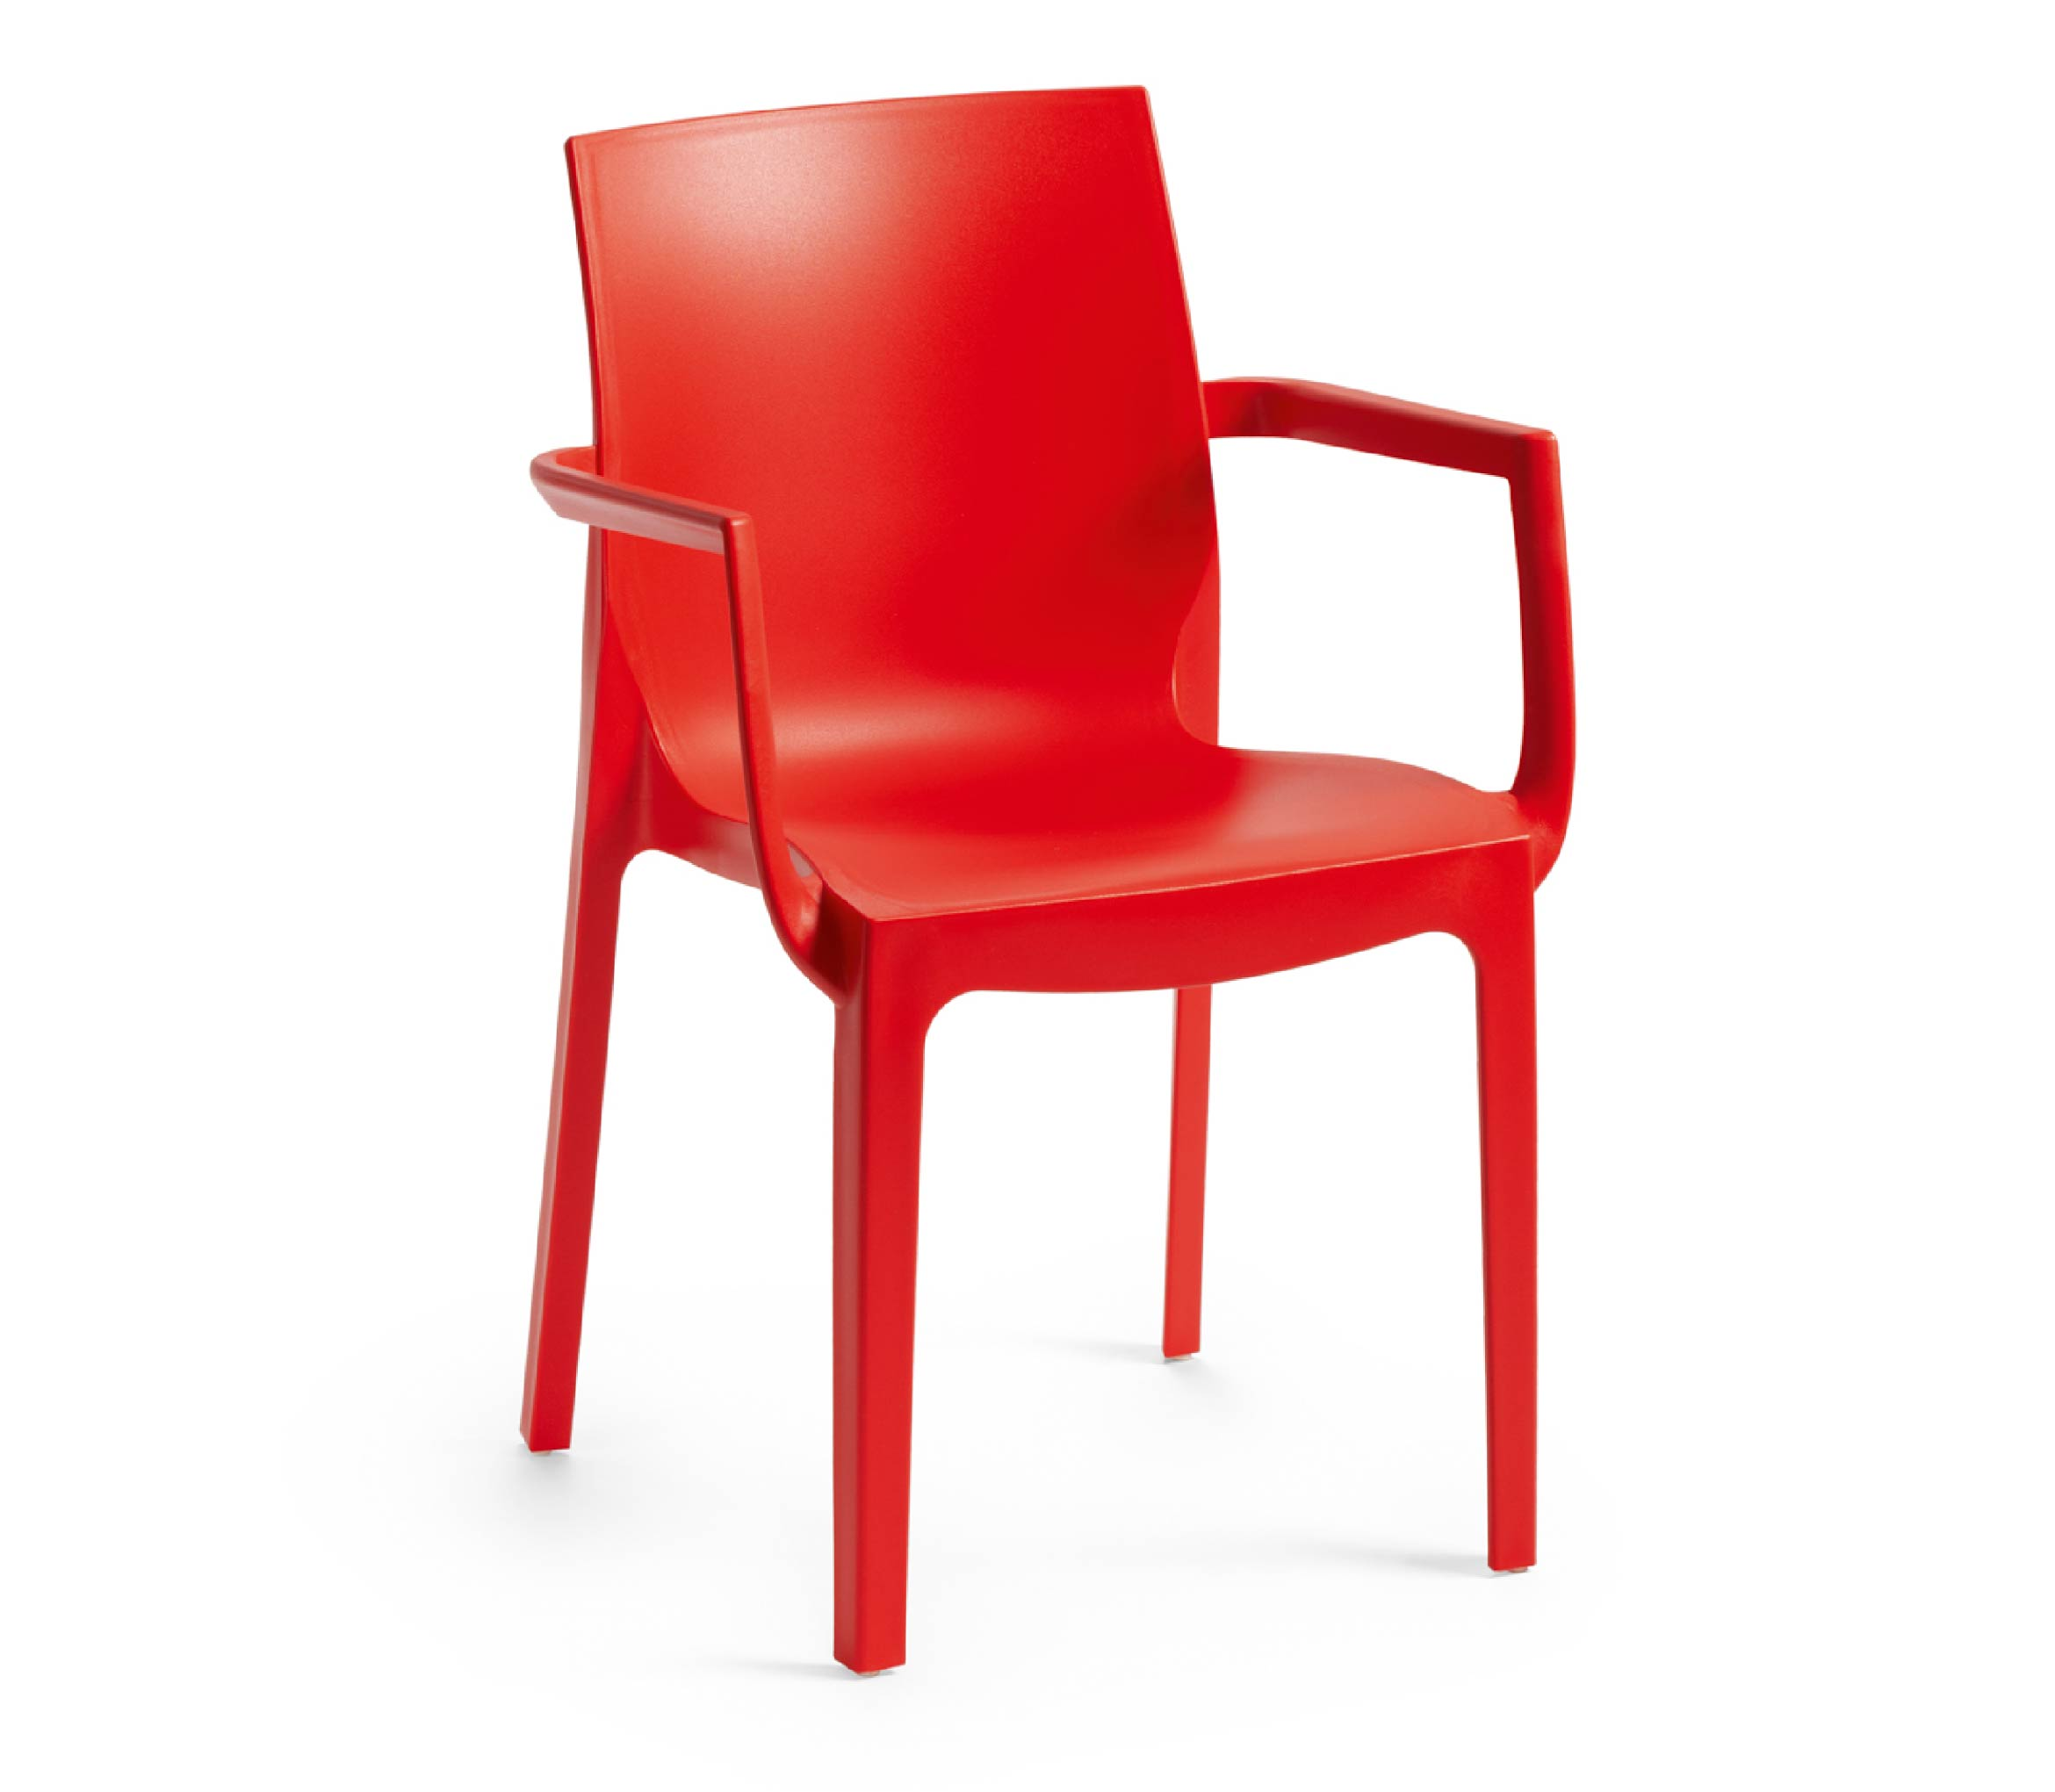 5 - TENSAI_FURNITURE_EMMA_CHERRY_RED_COLOR_PLASTIC_ARMCHAIR_white_background_405_001